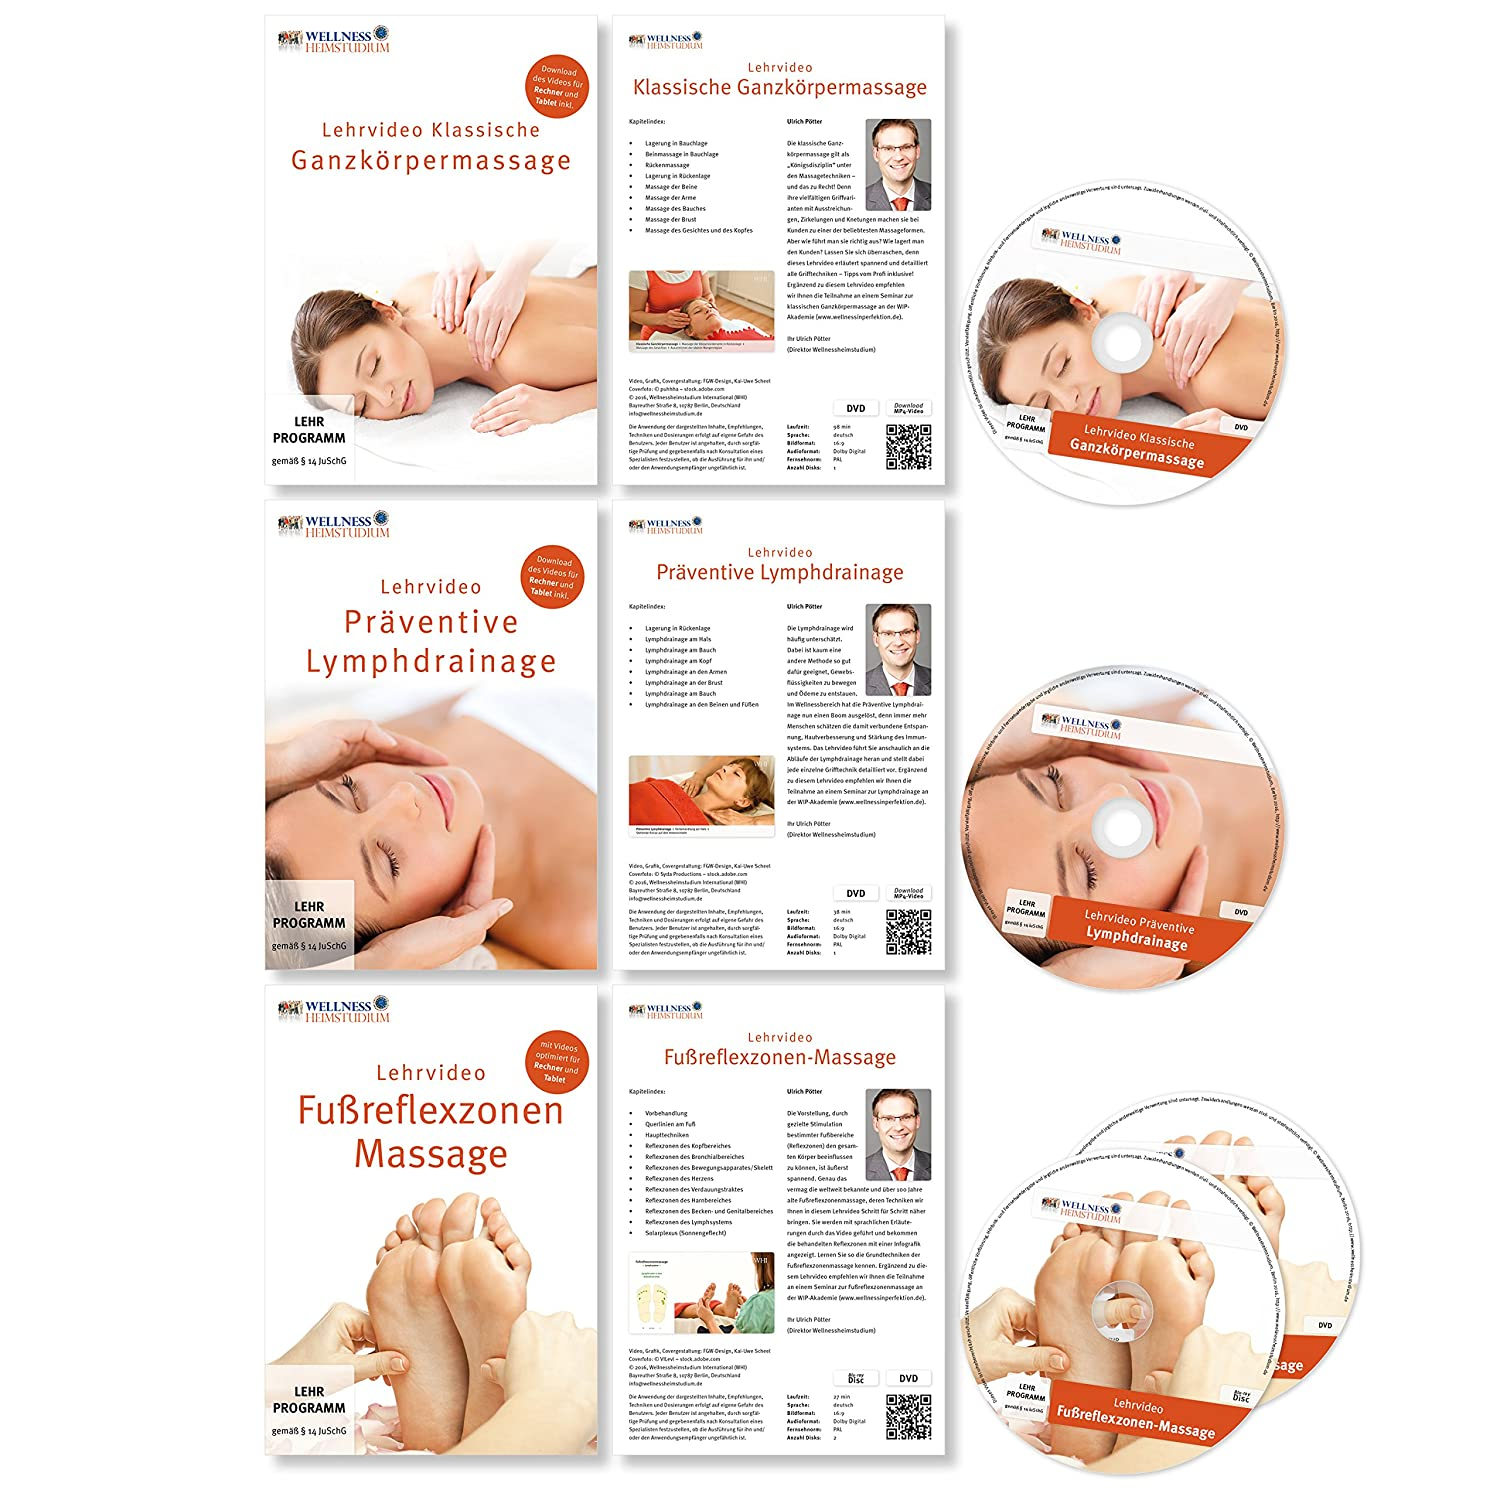 Profi MASSAGE & WELLNESS Heimstudium Serie 1 : 5 DVDs + 1 Handbuch ...